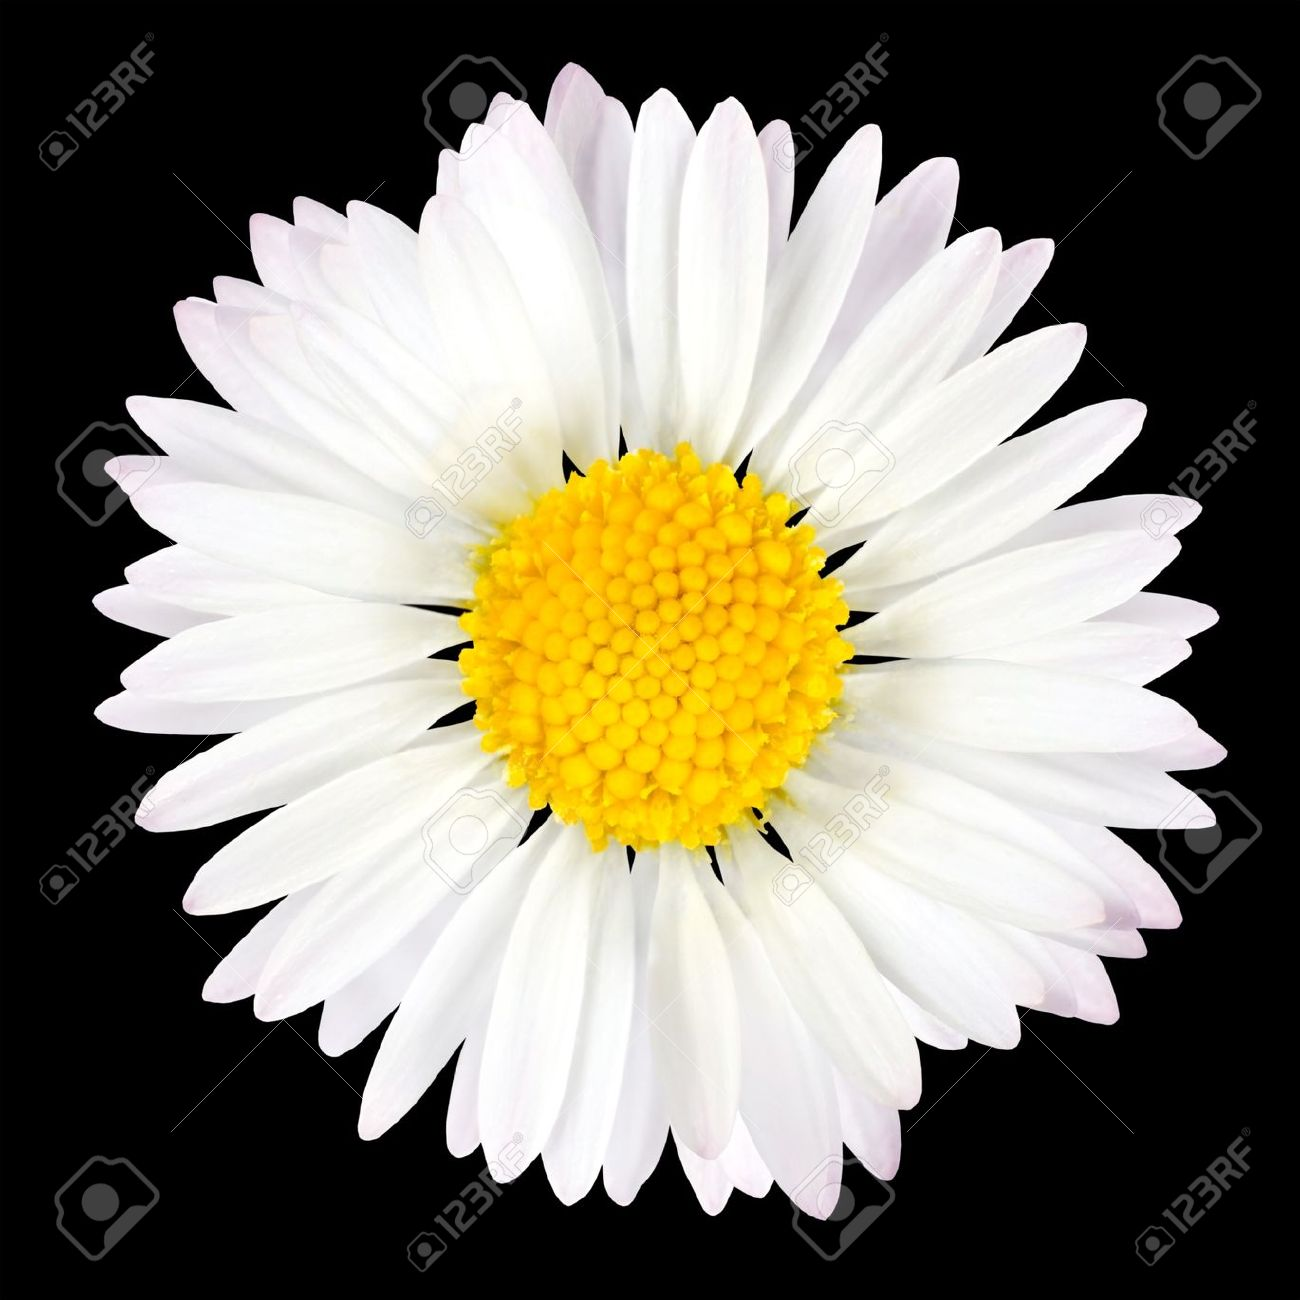 Daisy Flower Isolated On Black Background White With Yellow